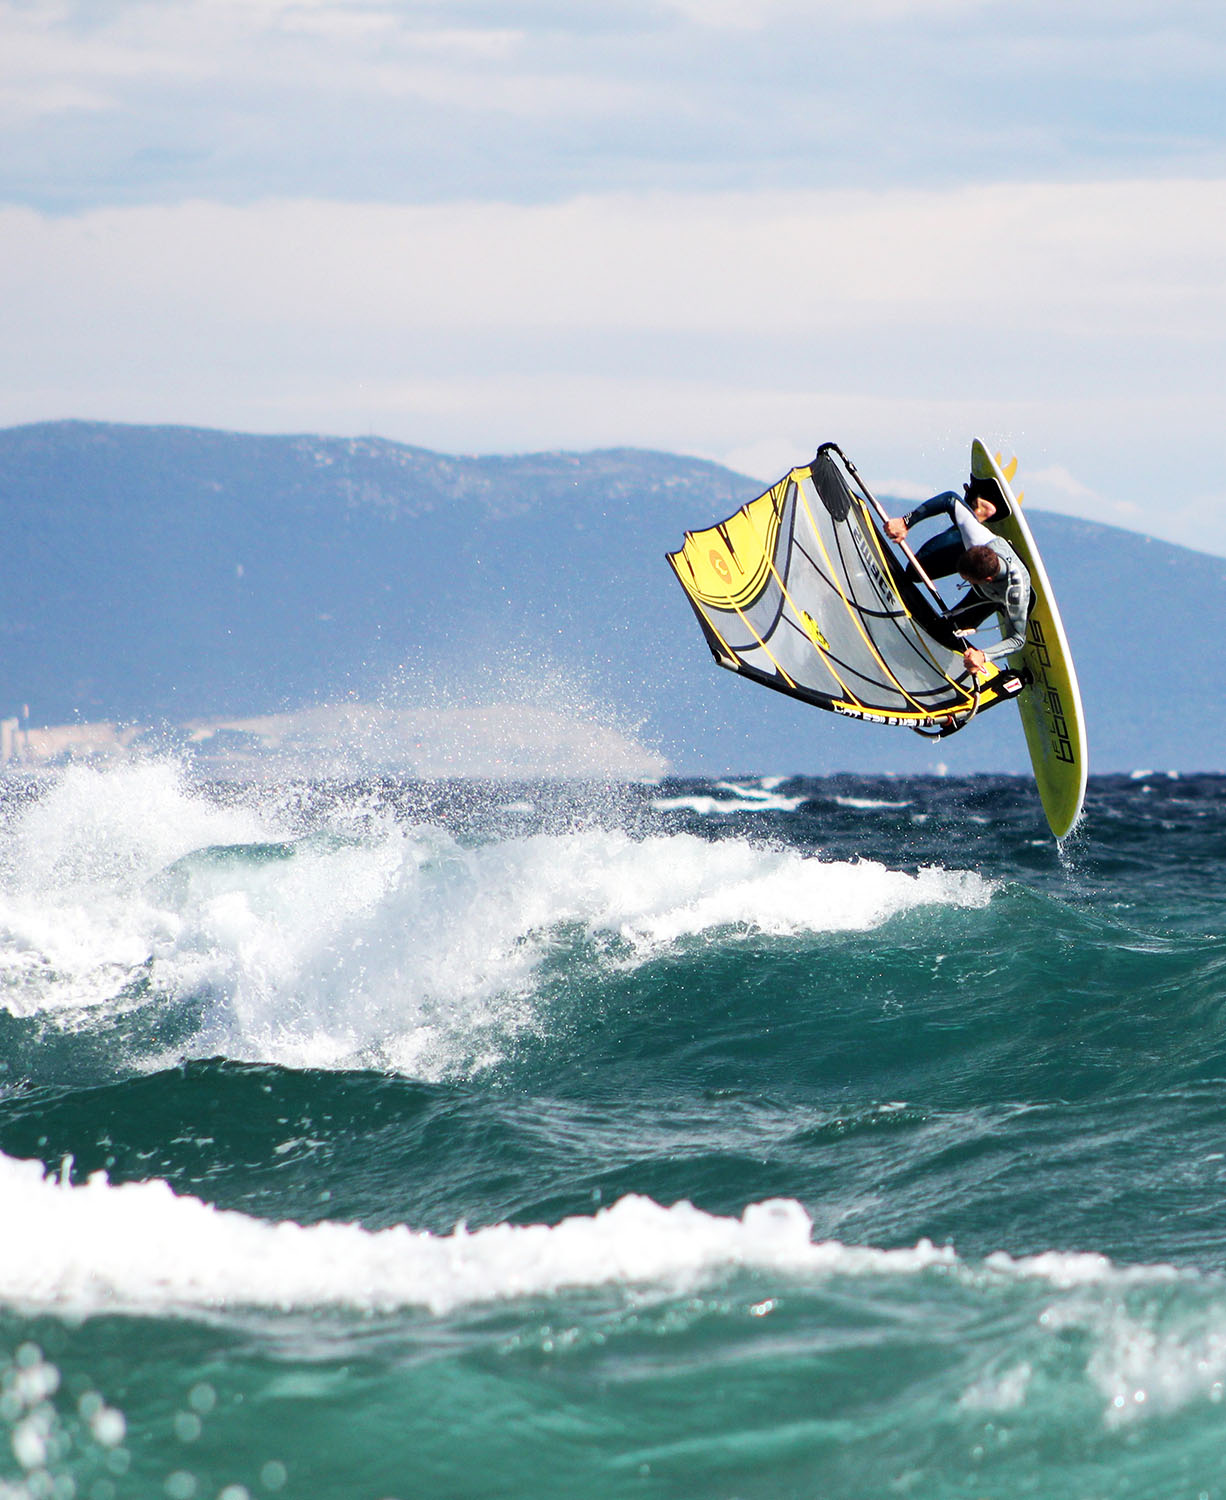 fazana windsurfing lessions with professional surfer